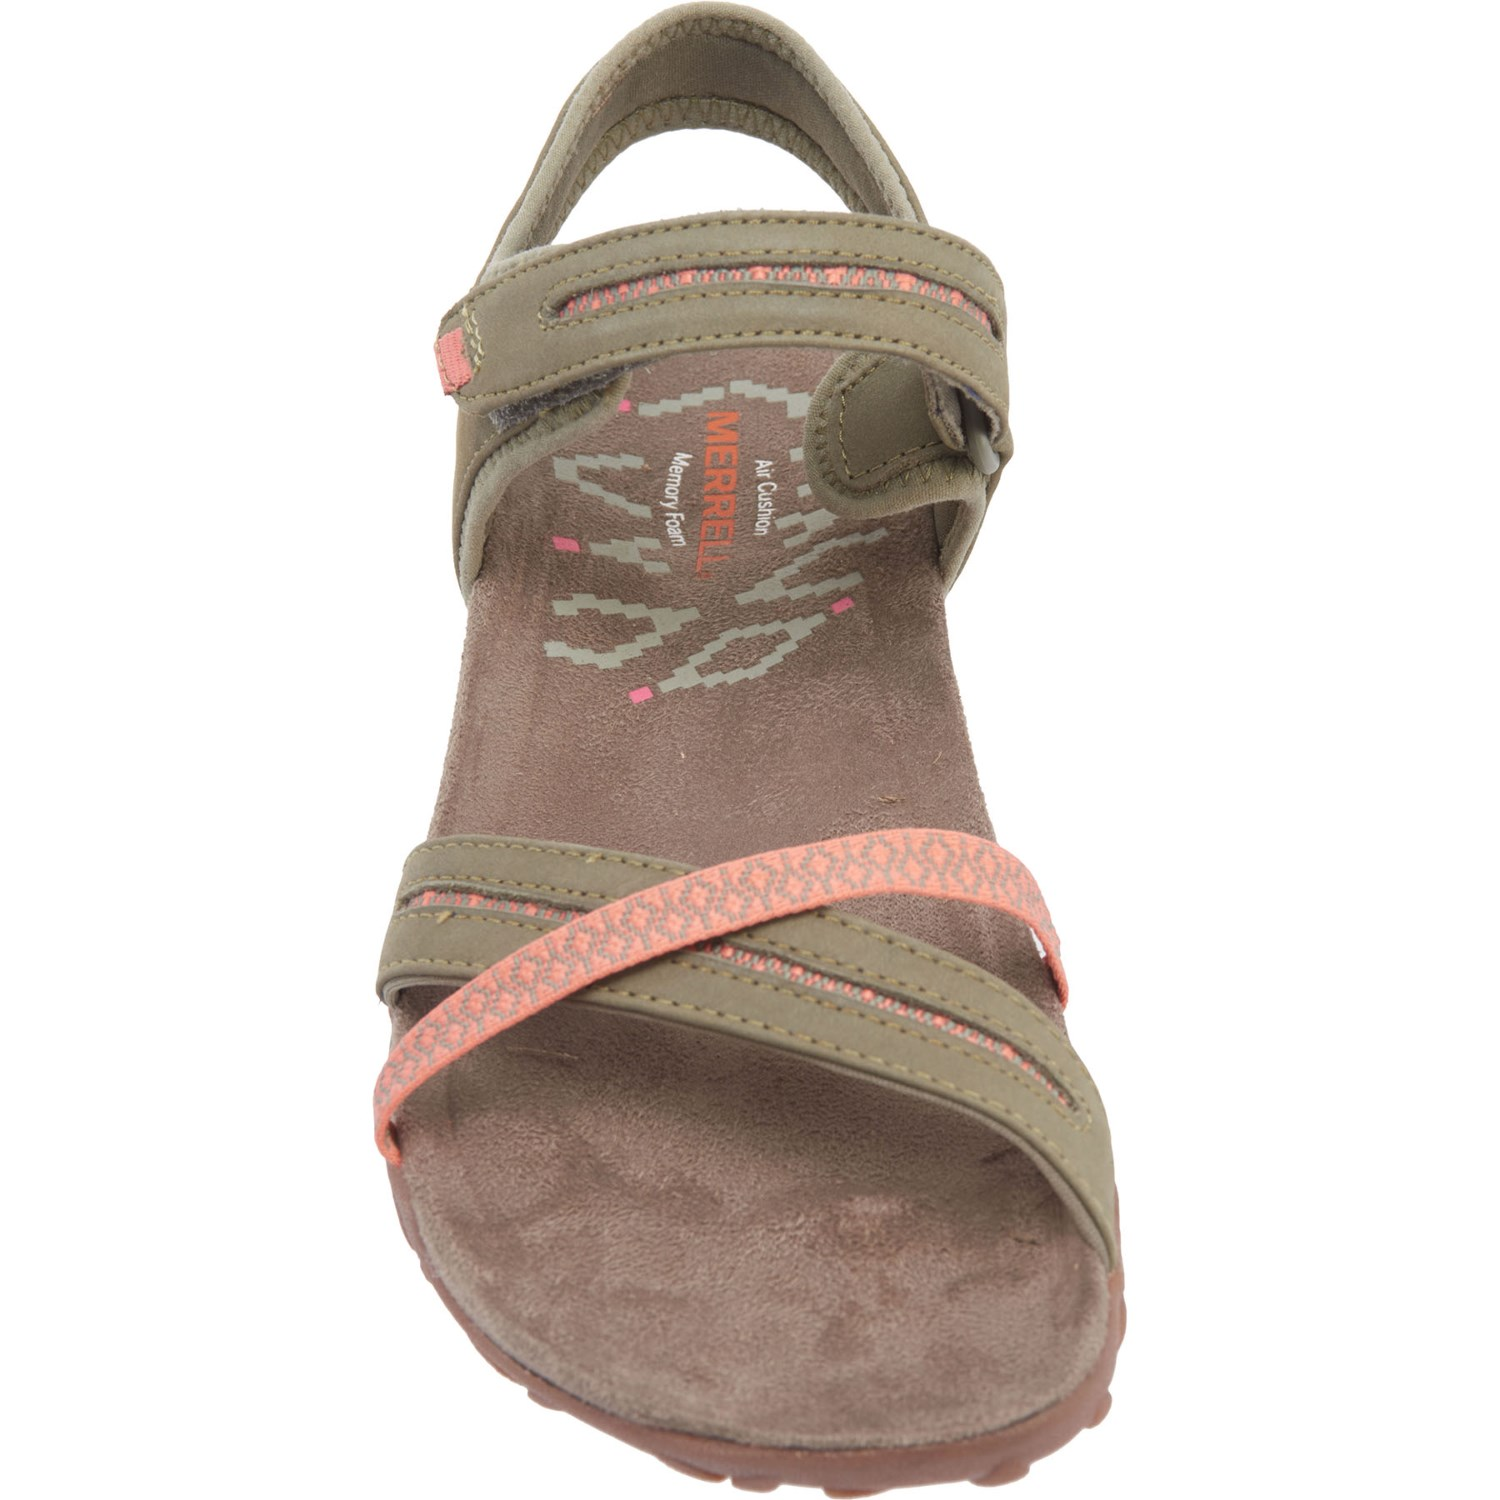 fa5946cb3c42 Merrell Terran Cross II Sport Sandals (For Women) - Save 42%